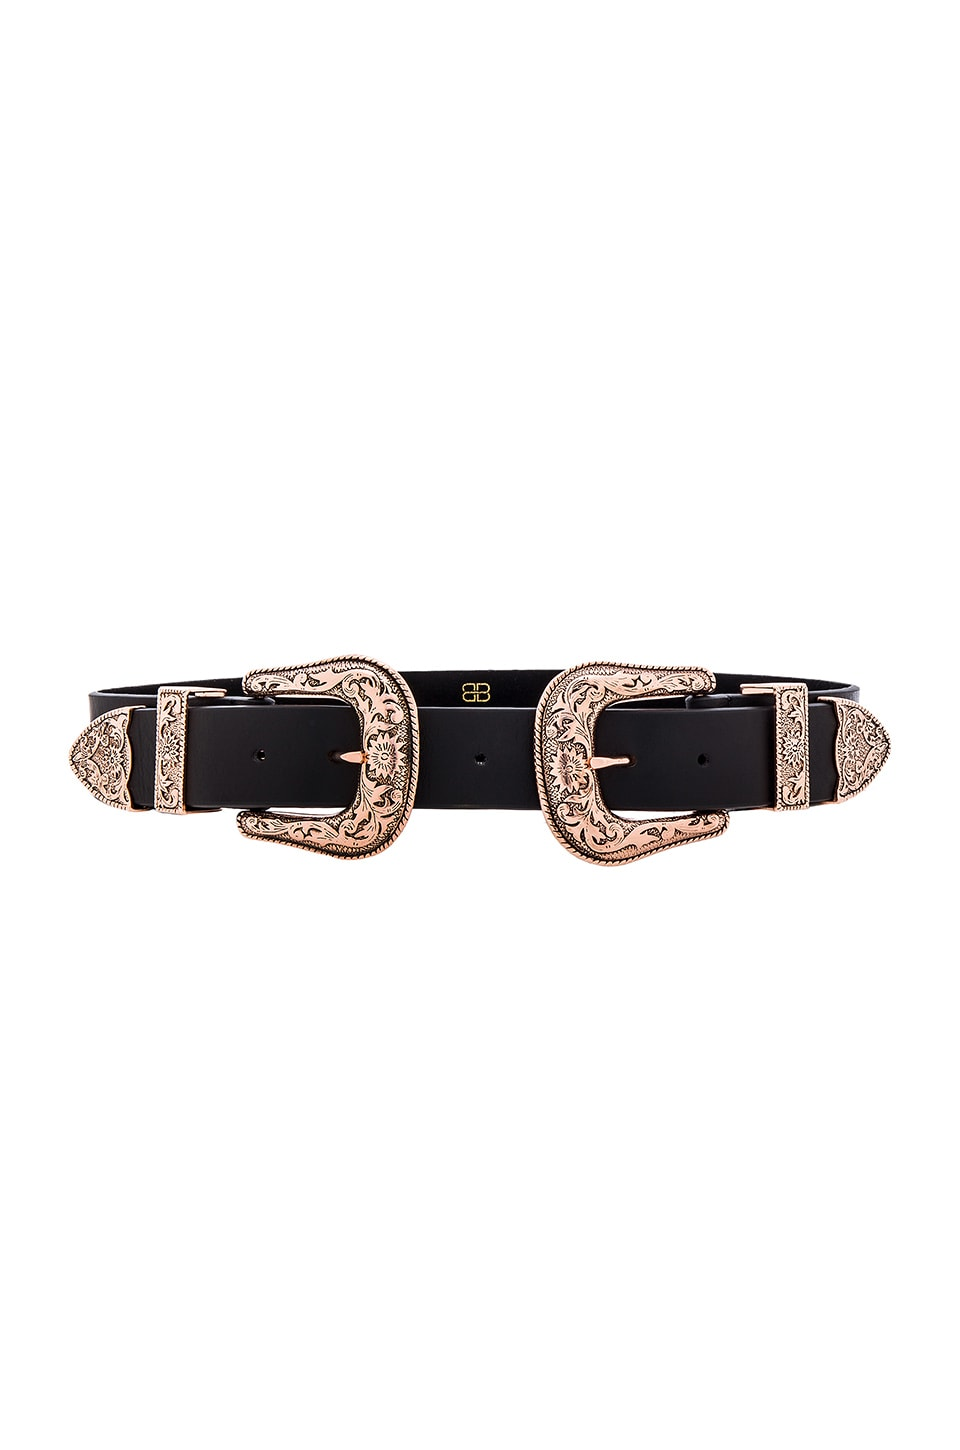 B-Low the Belt Bri Bri Waist Belt in Black & Rose Gold